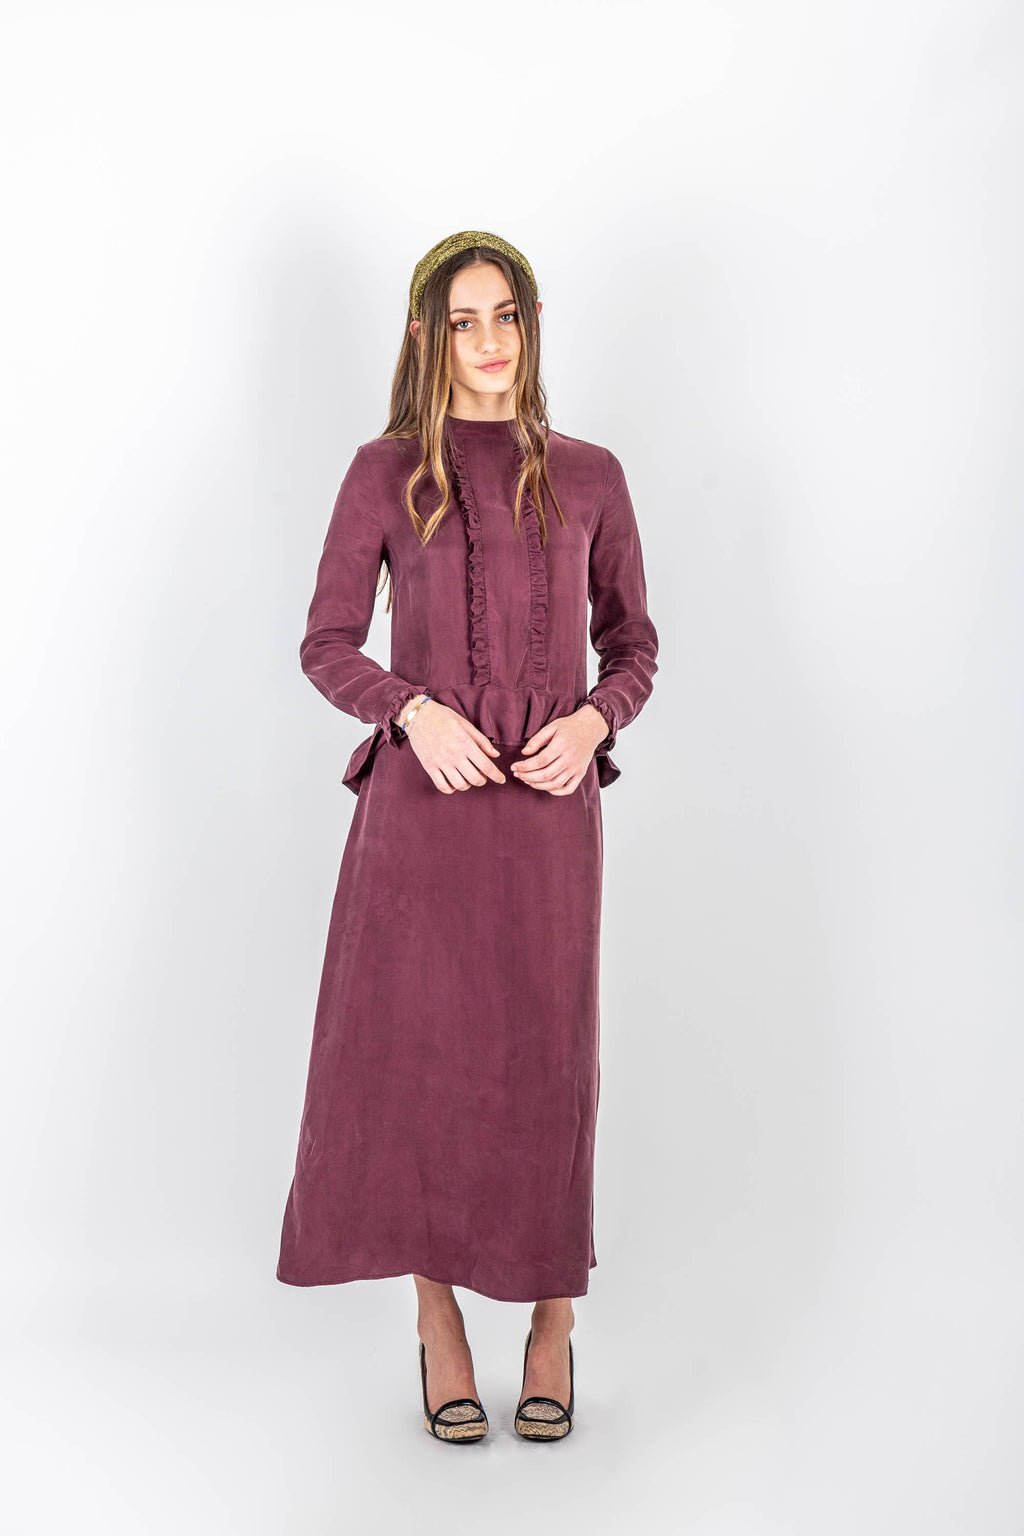 Sapphira Mulberry Frill Dress - Sarah Feldman Modest Clothing